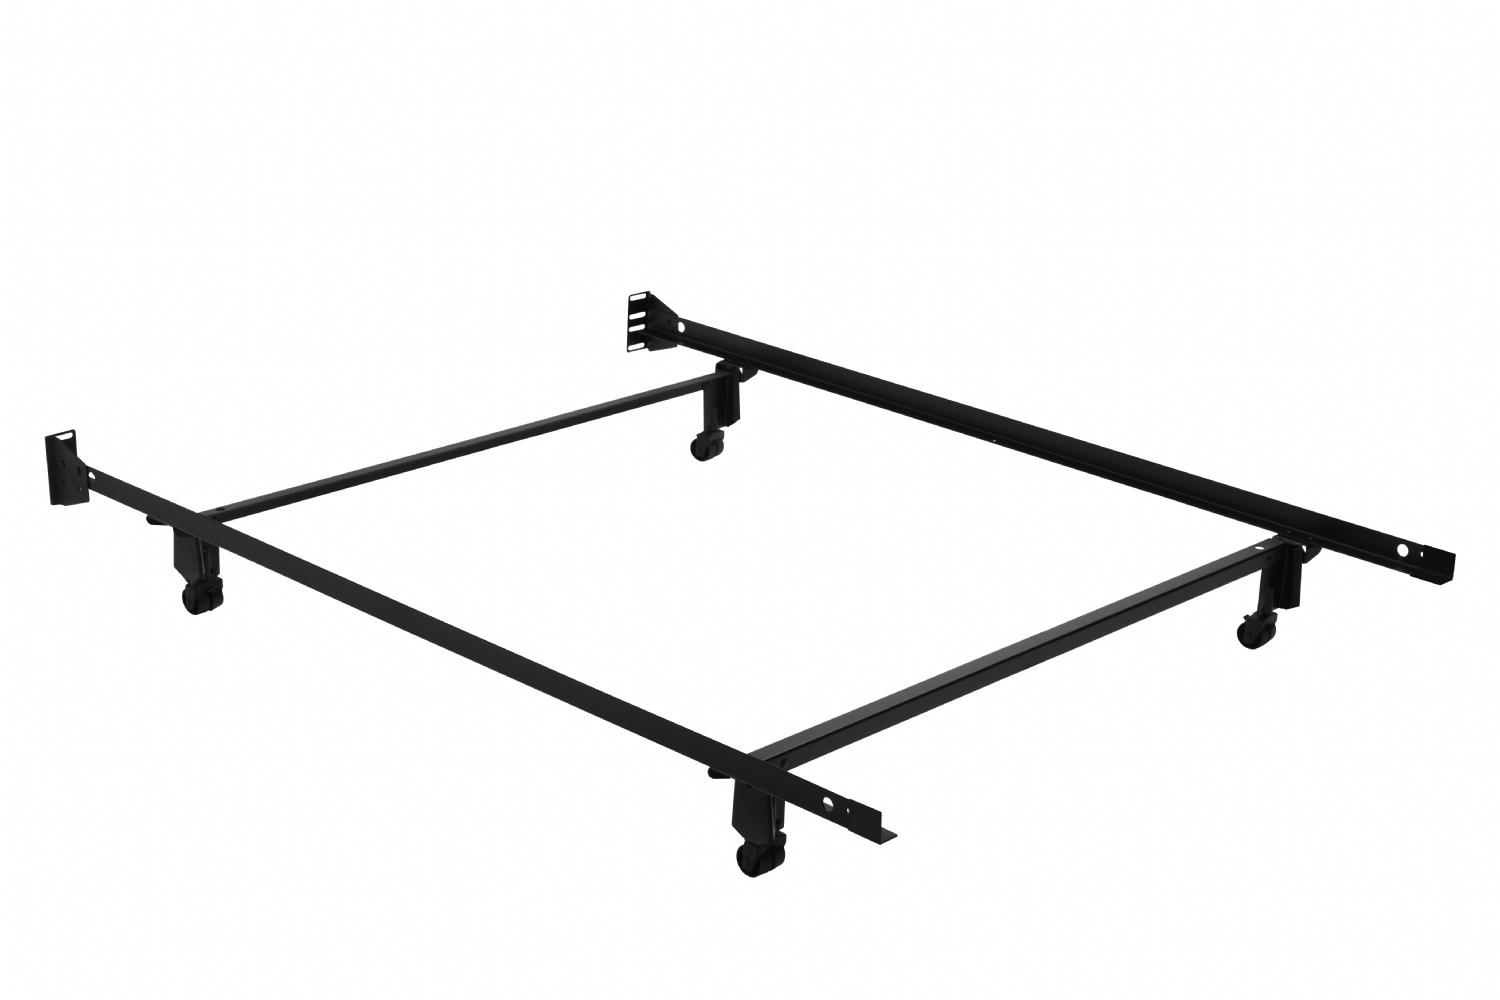 instamatic bed frame with wheels - Instamatic Bed Frame